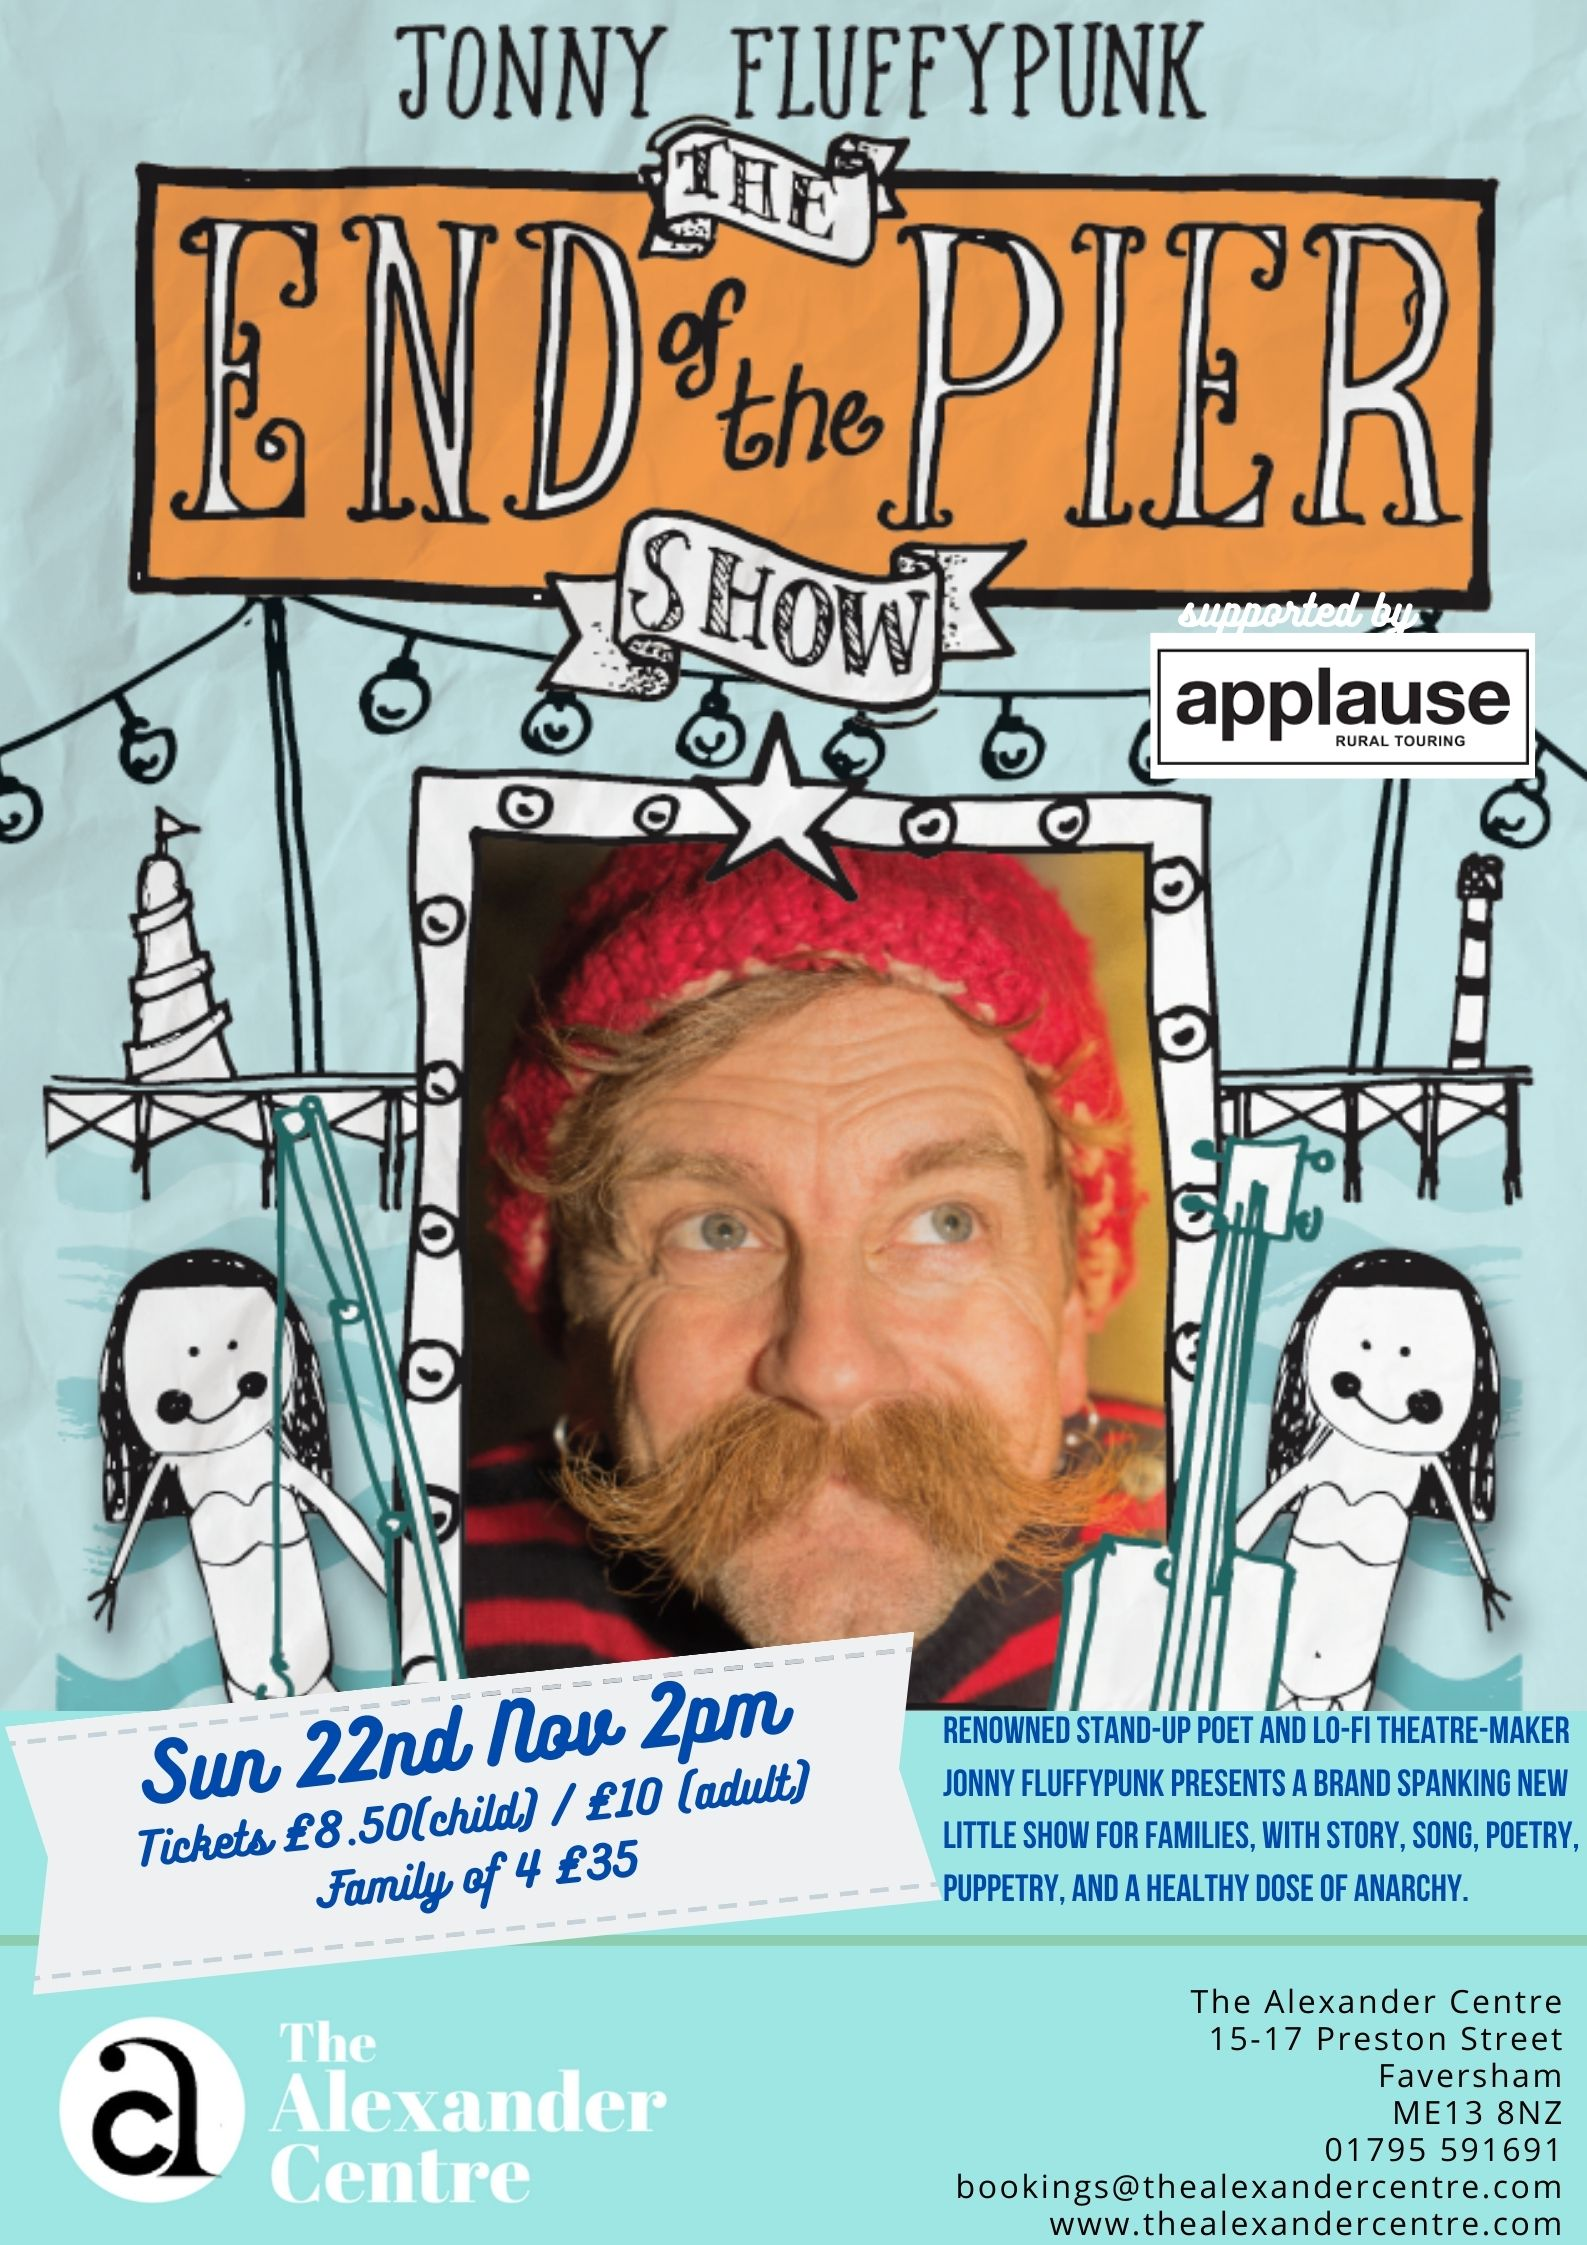 Jonny Fluffypunk's 'The End of the Pier Show'